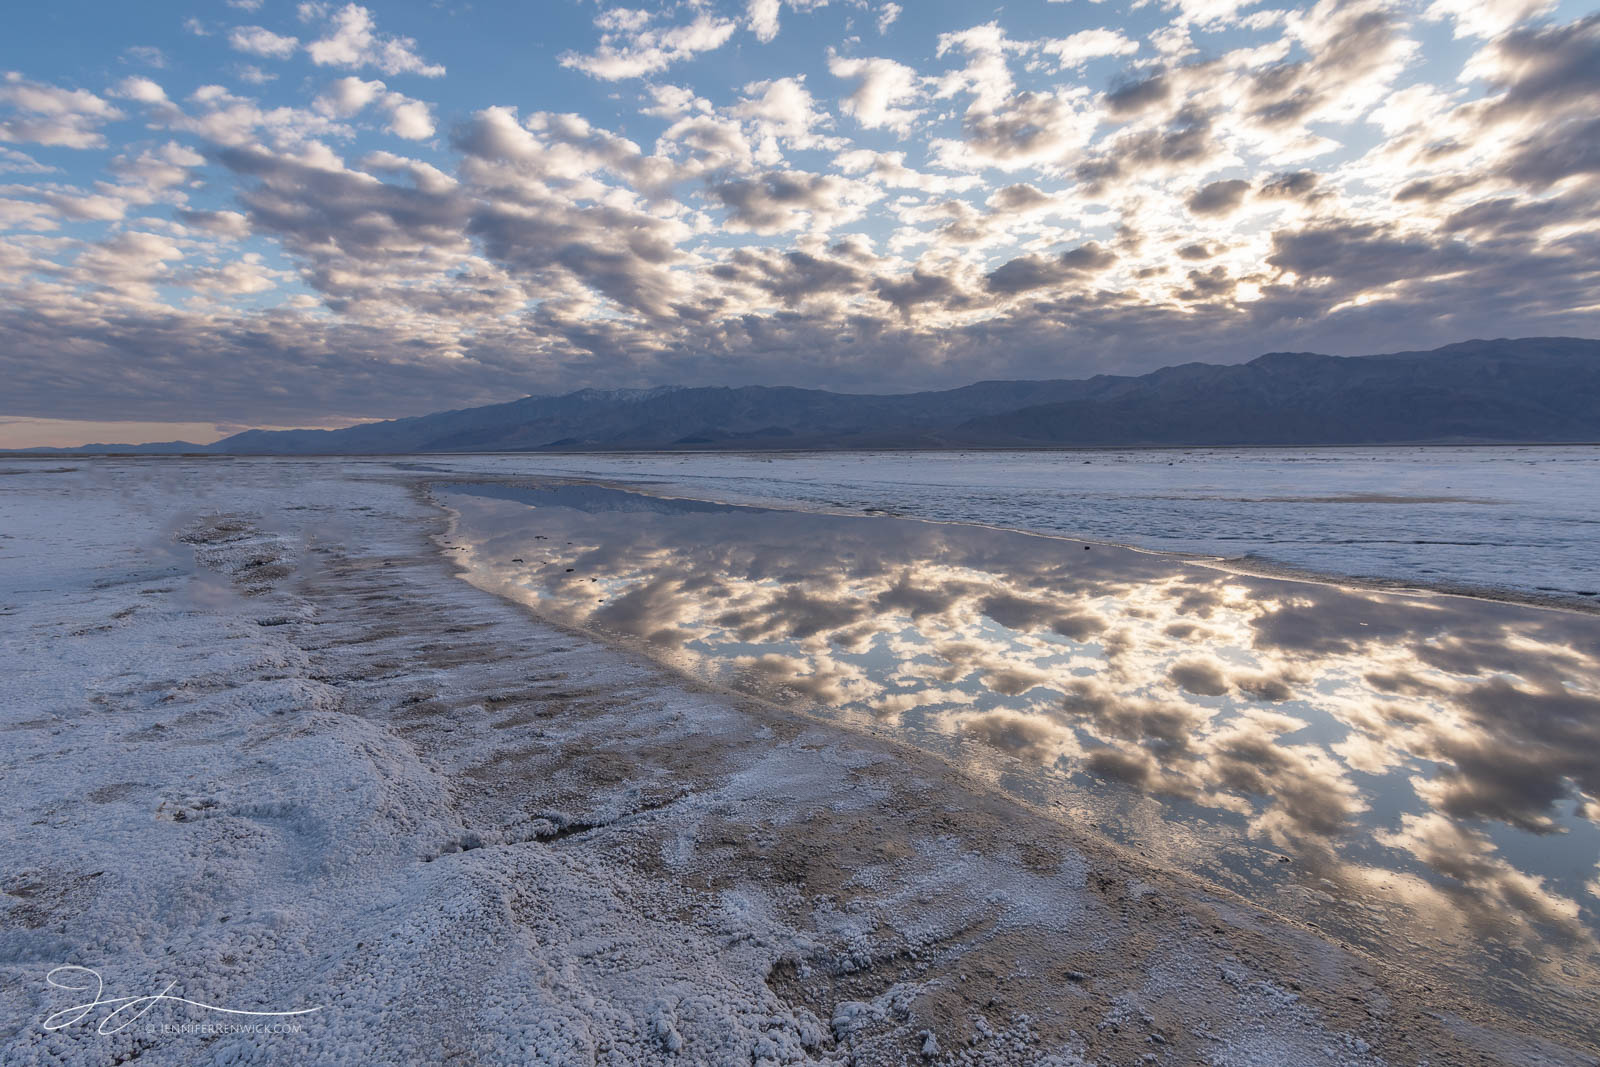 Death Valley National Park, Mojave Desert, abstract photography, California, landscape, salt springs, water, cloud, reflections, playa, photo